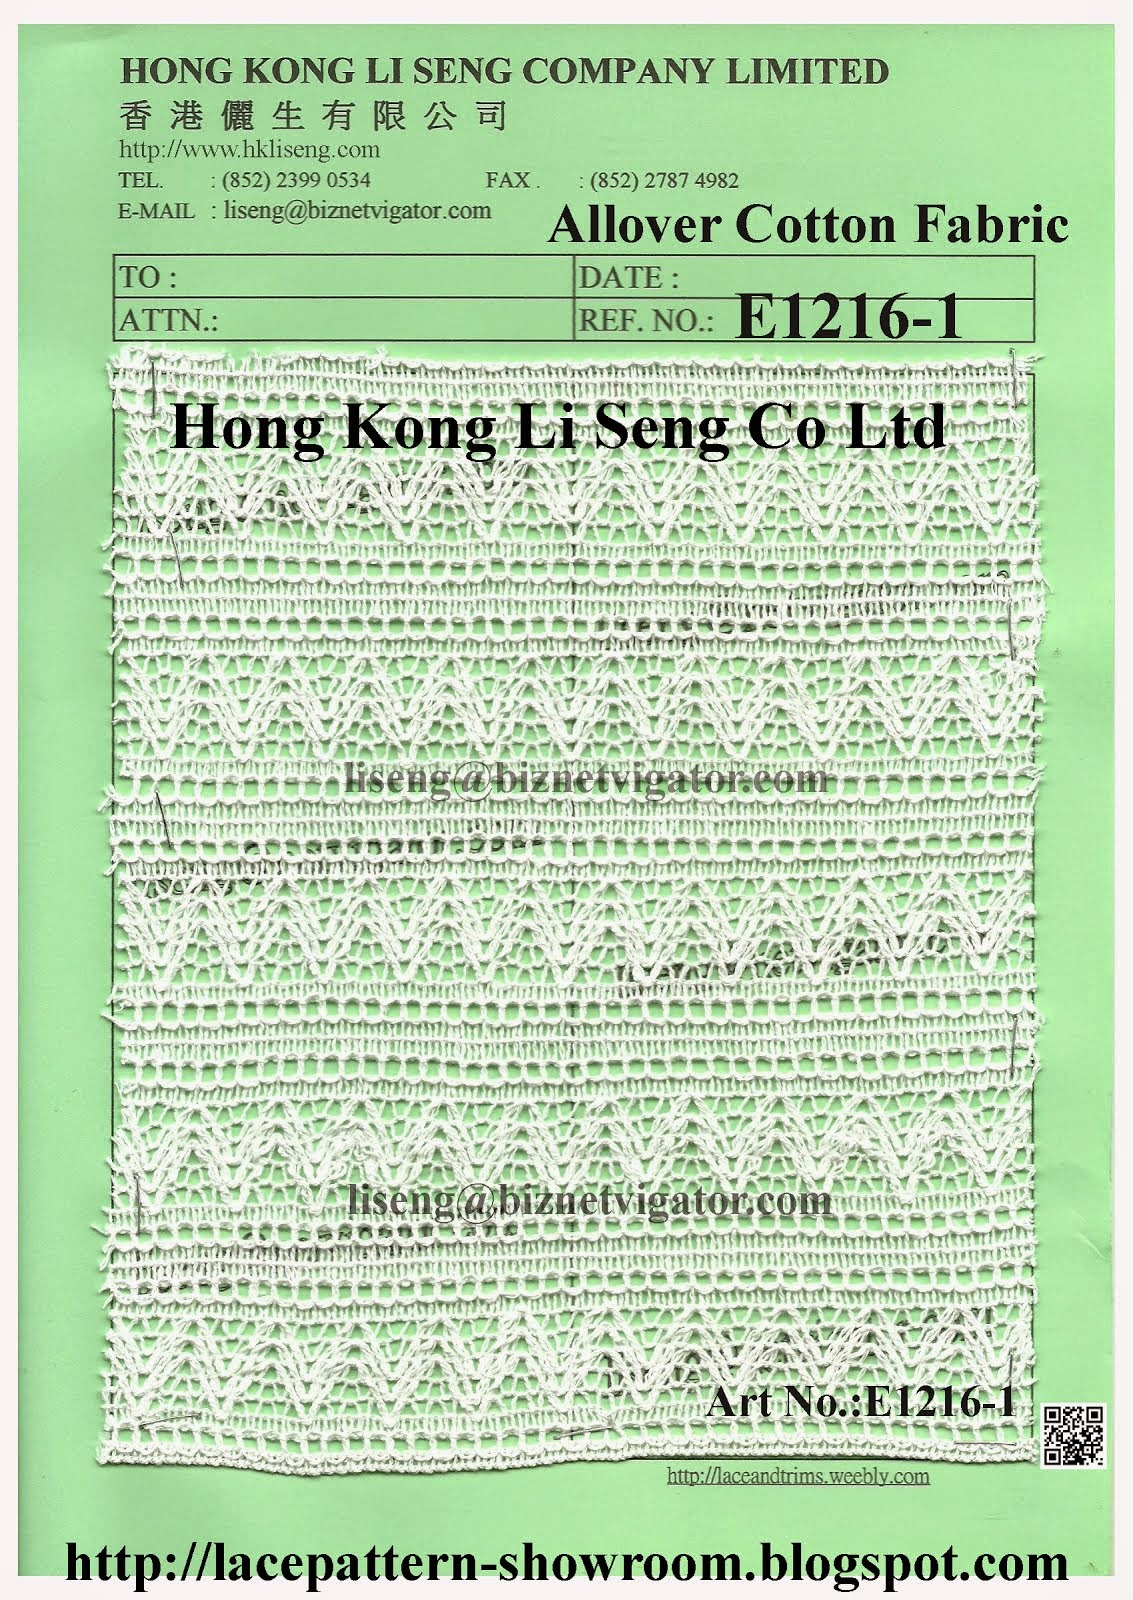 All-Over Cotton Lace Fabric Manufacturer Wholesale and Supplier - Hong Kong Li Seng Co Ltd